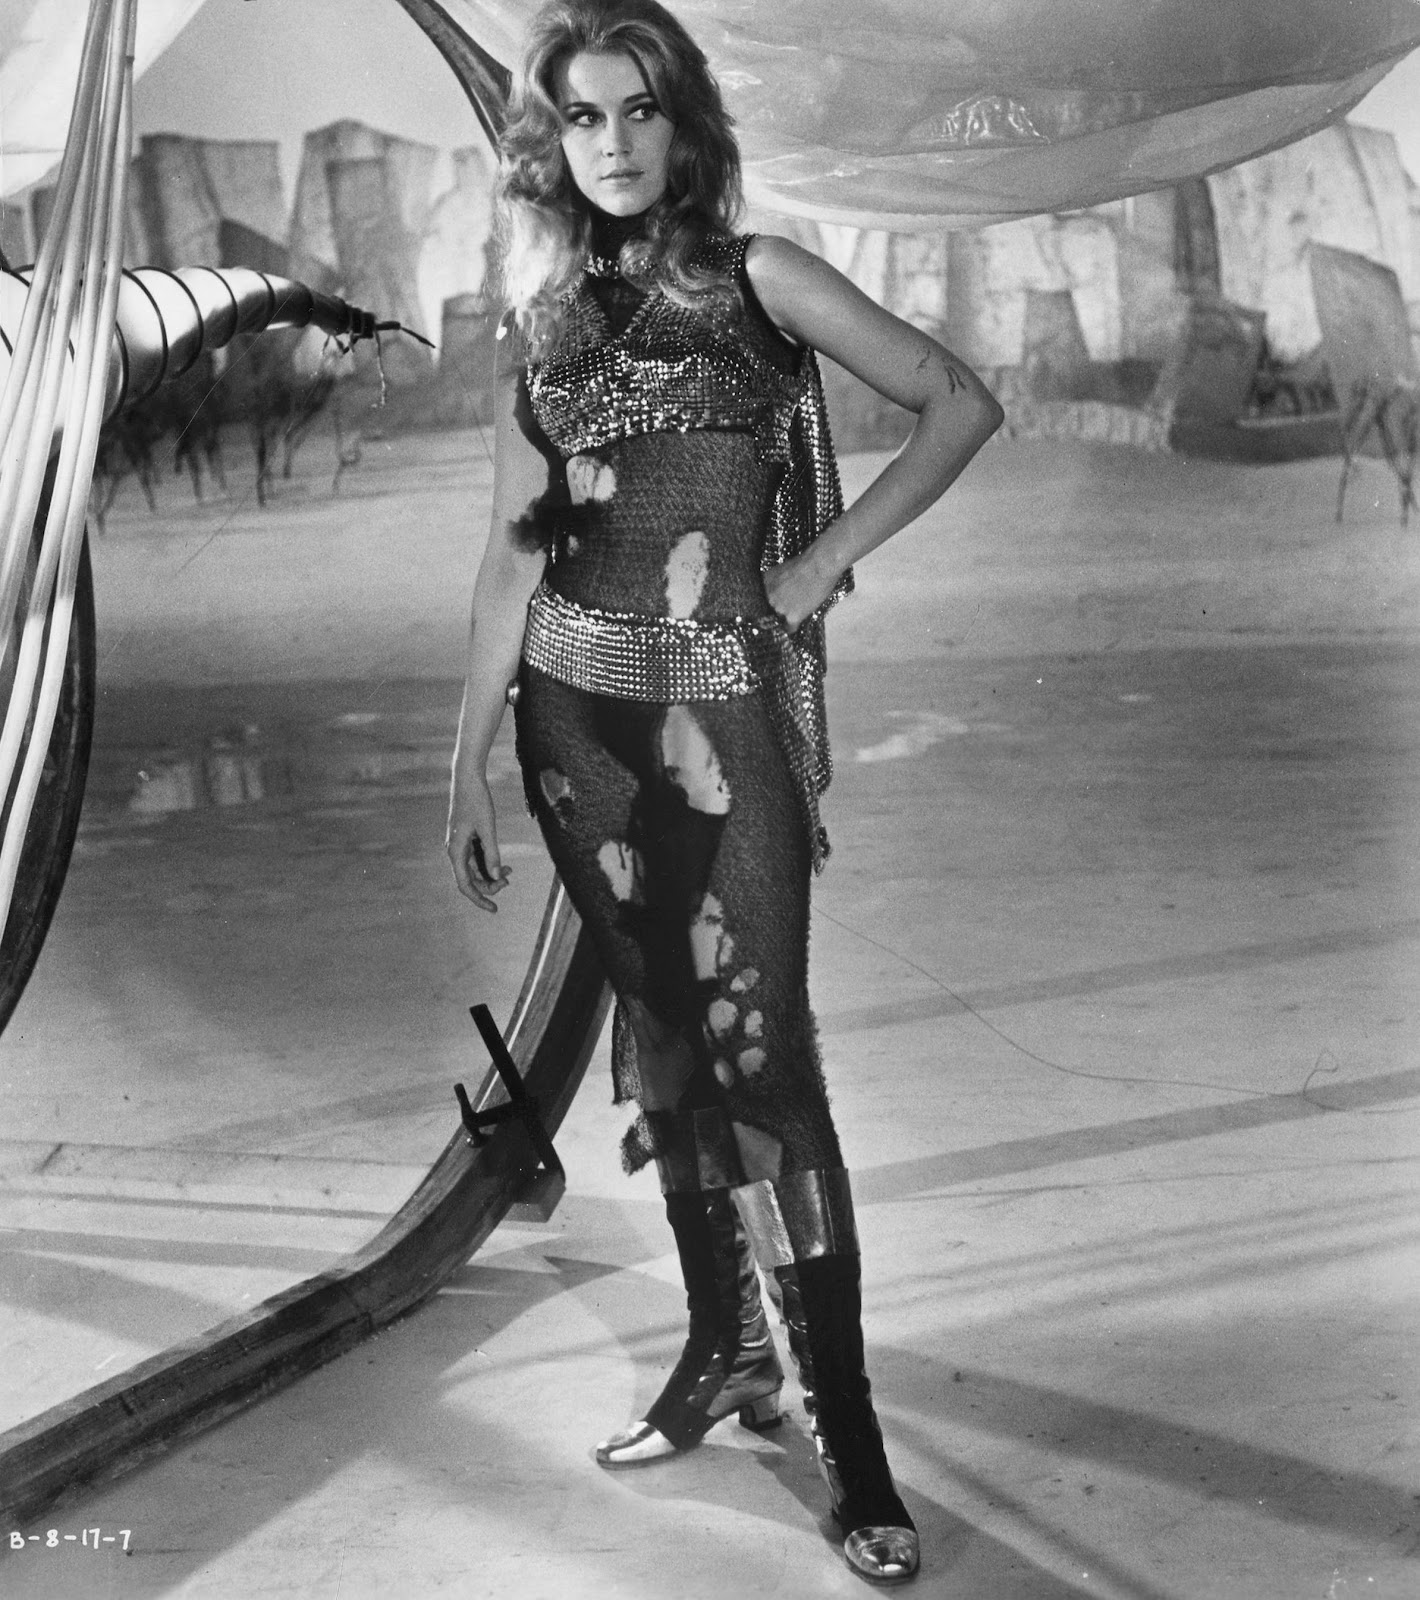 Jane Fonda celebrityleatherfashions.filminspector.com